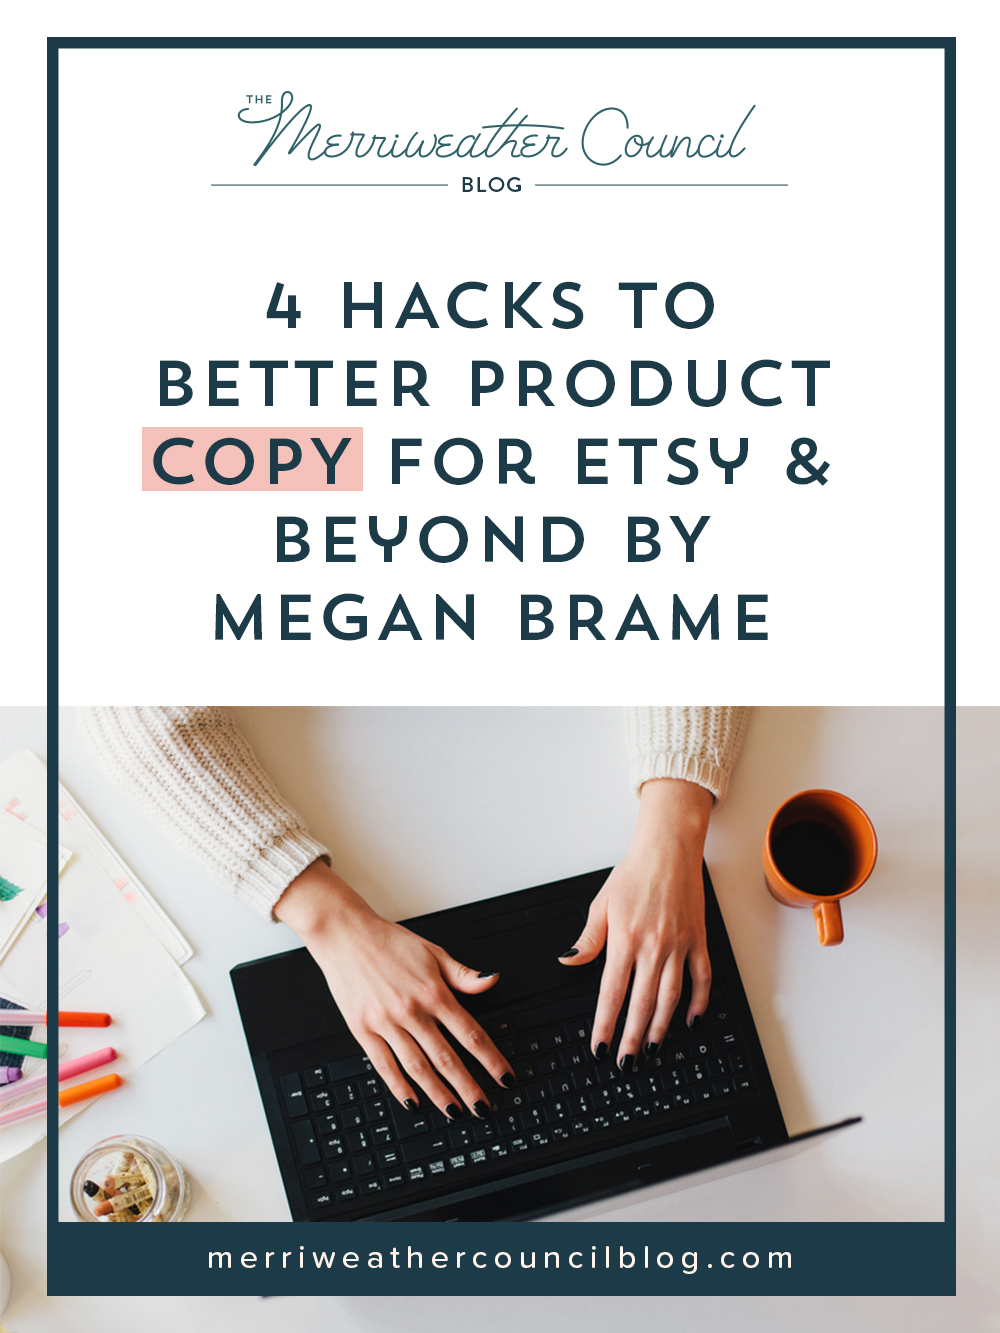 4 Hacks to Better Product Copy by Megan Brame | the merriweather council blog